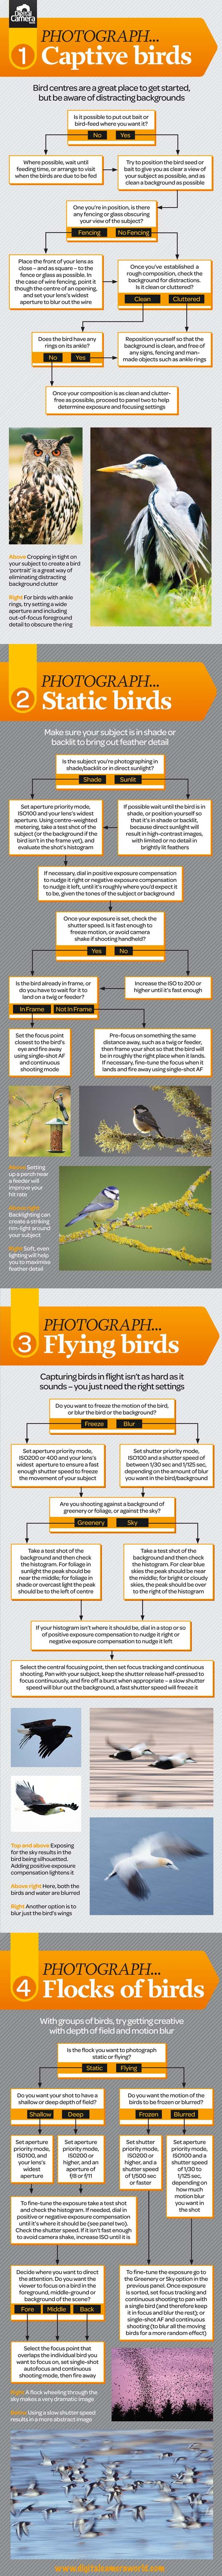 Free bird photography cheat sheet. Drag and drop download shows how to photograph birds in 4 common situations.